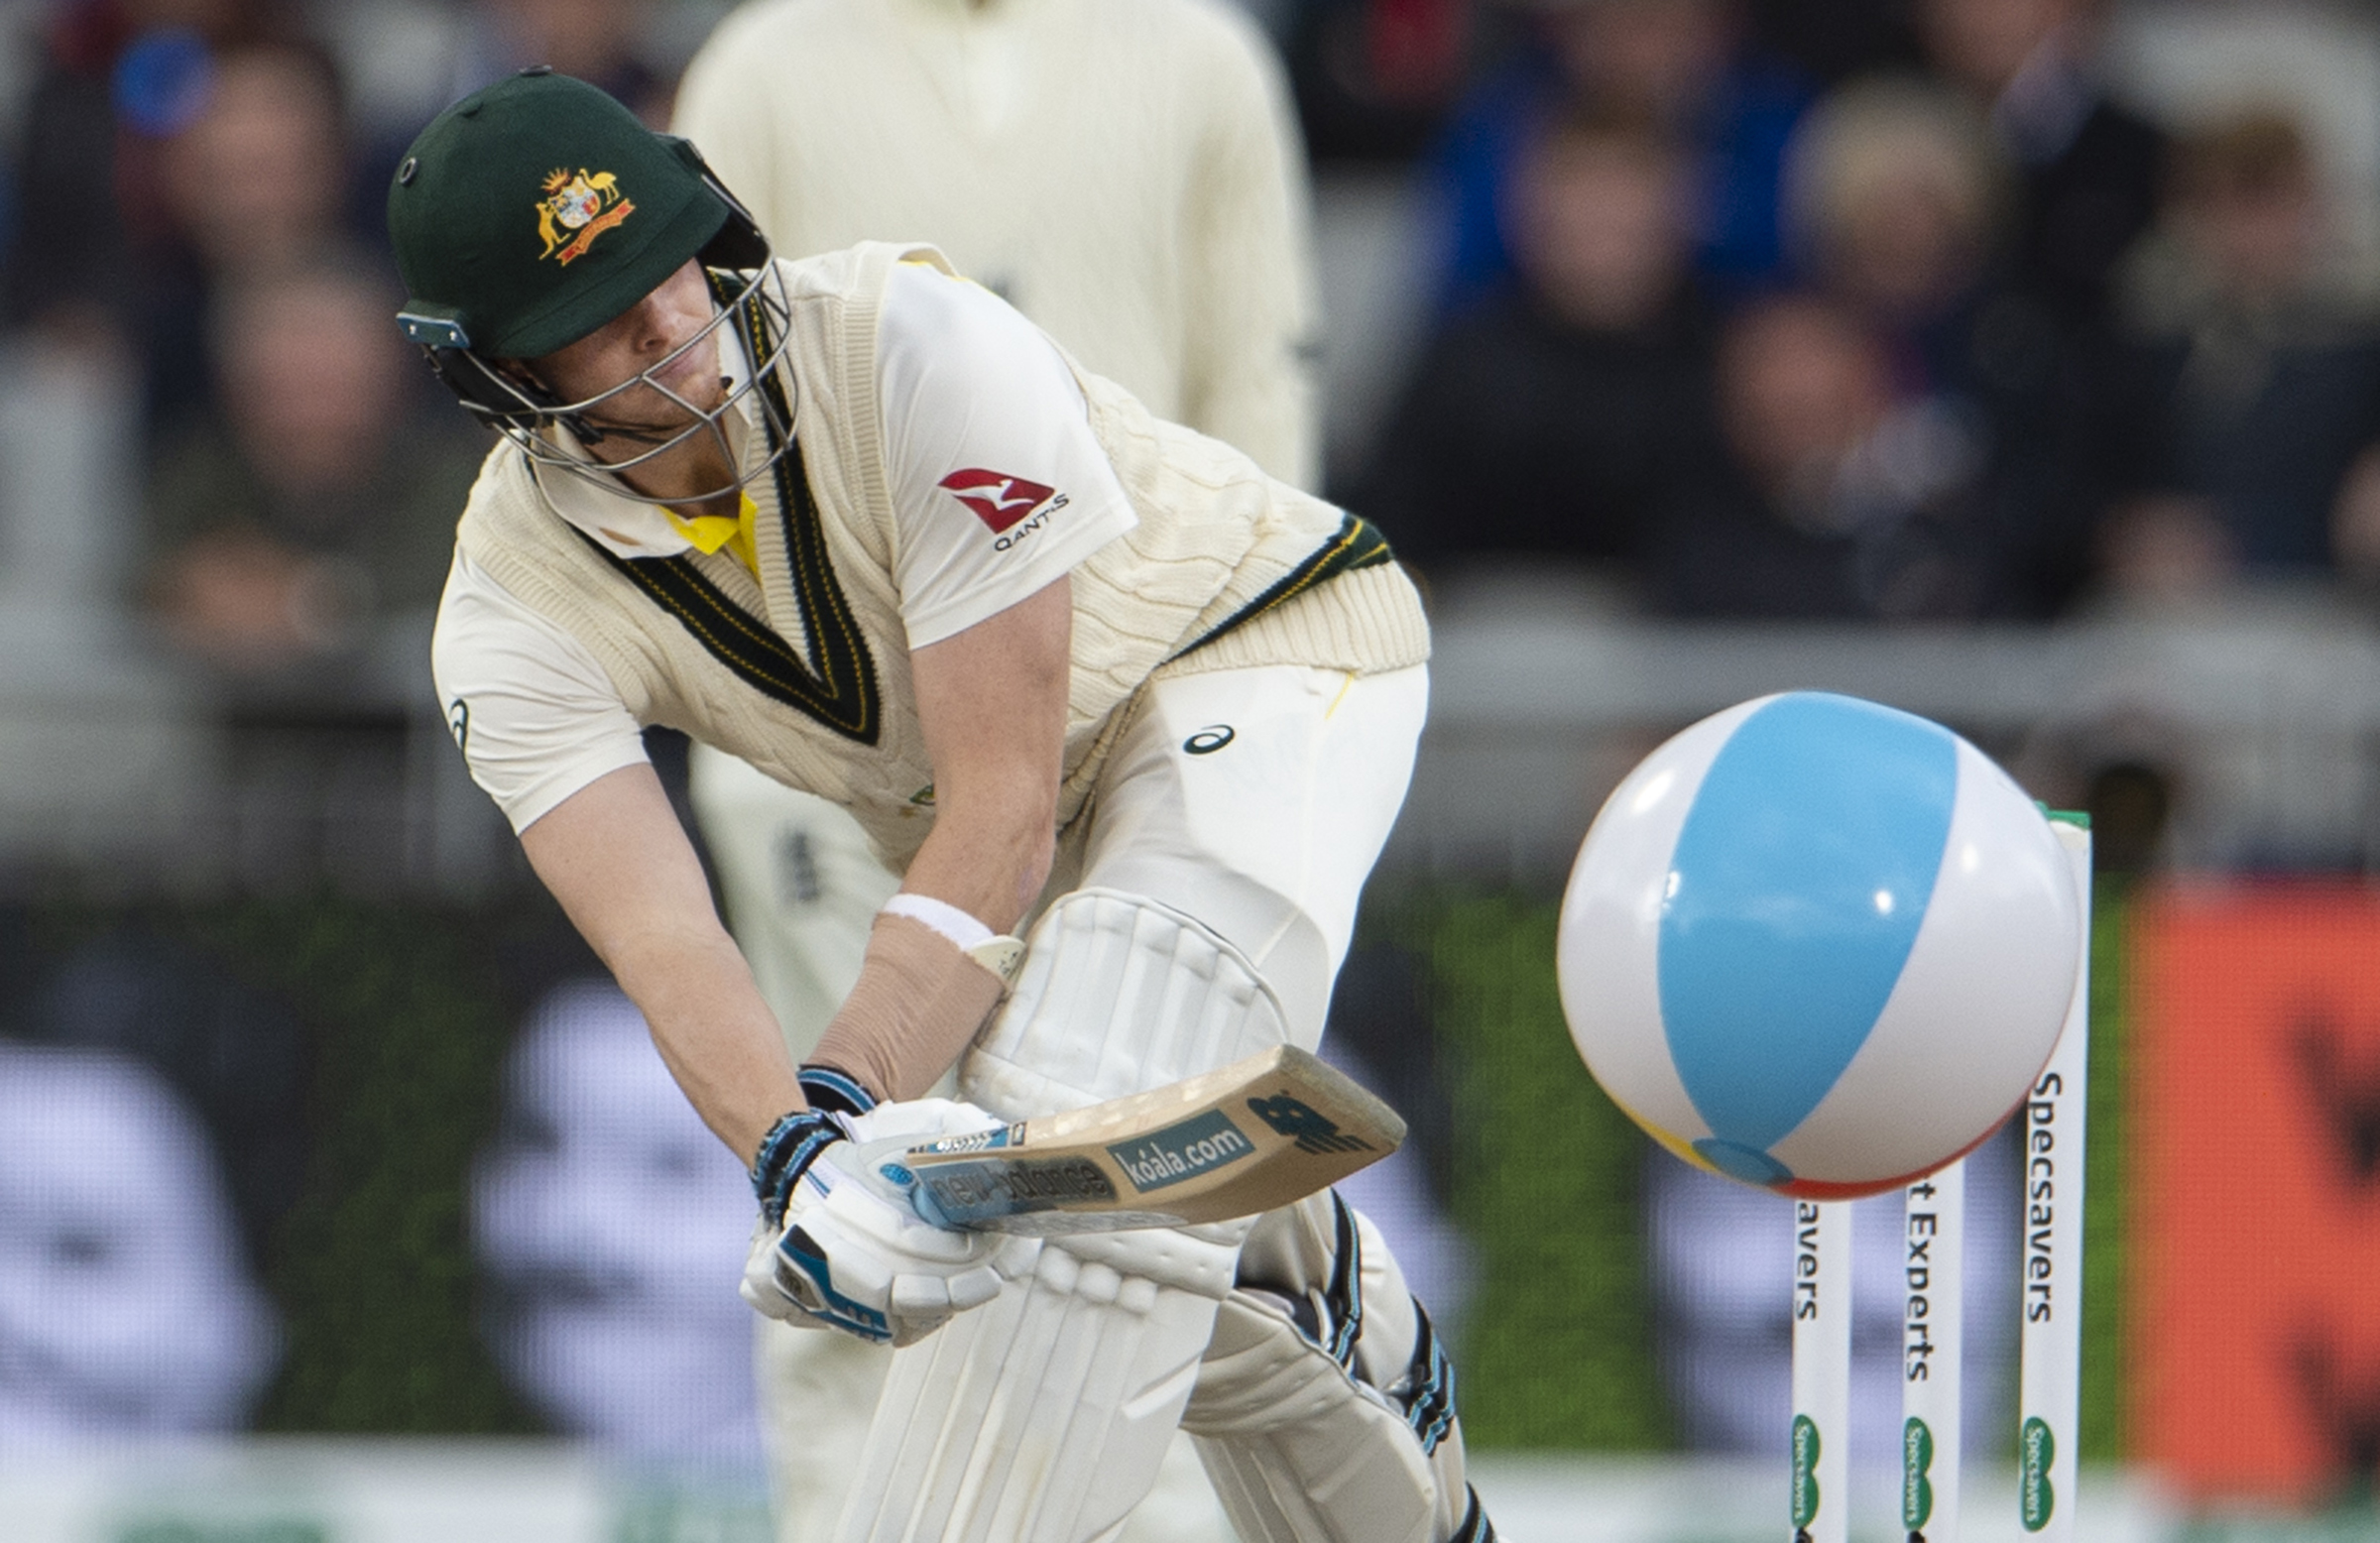 Steve Smith bats away a stray beach ball on day one at Old Trafford // Getty